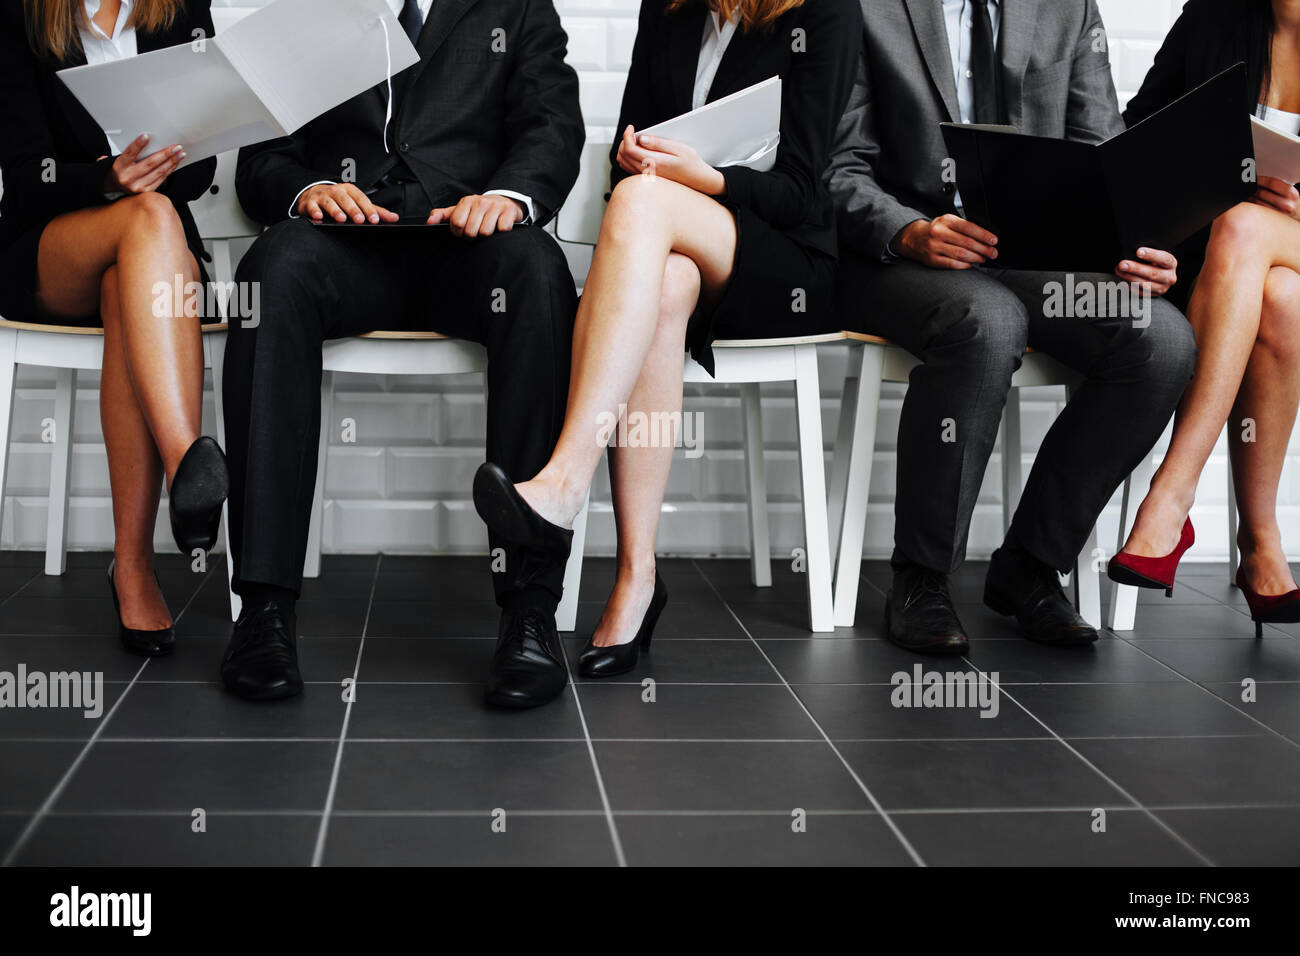 Group of business people waiting in waiting room - Stock Image